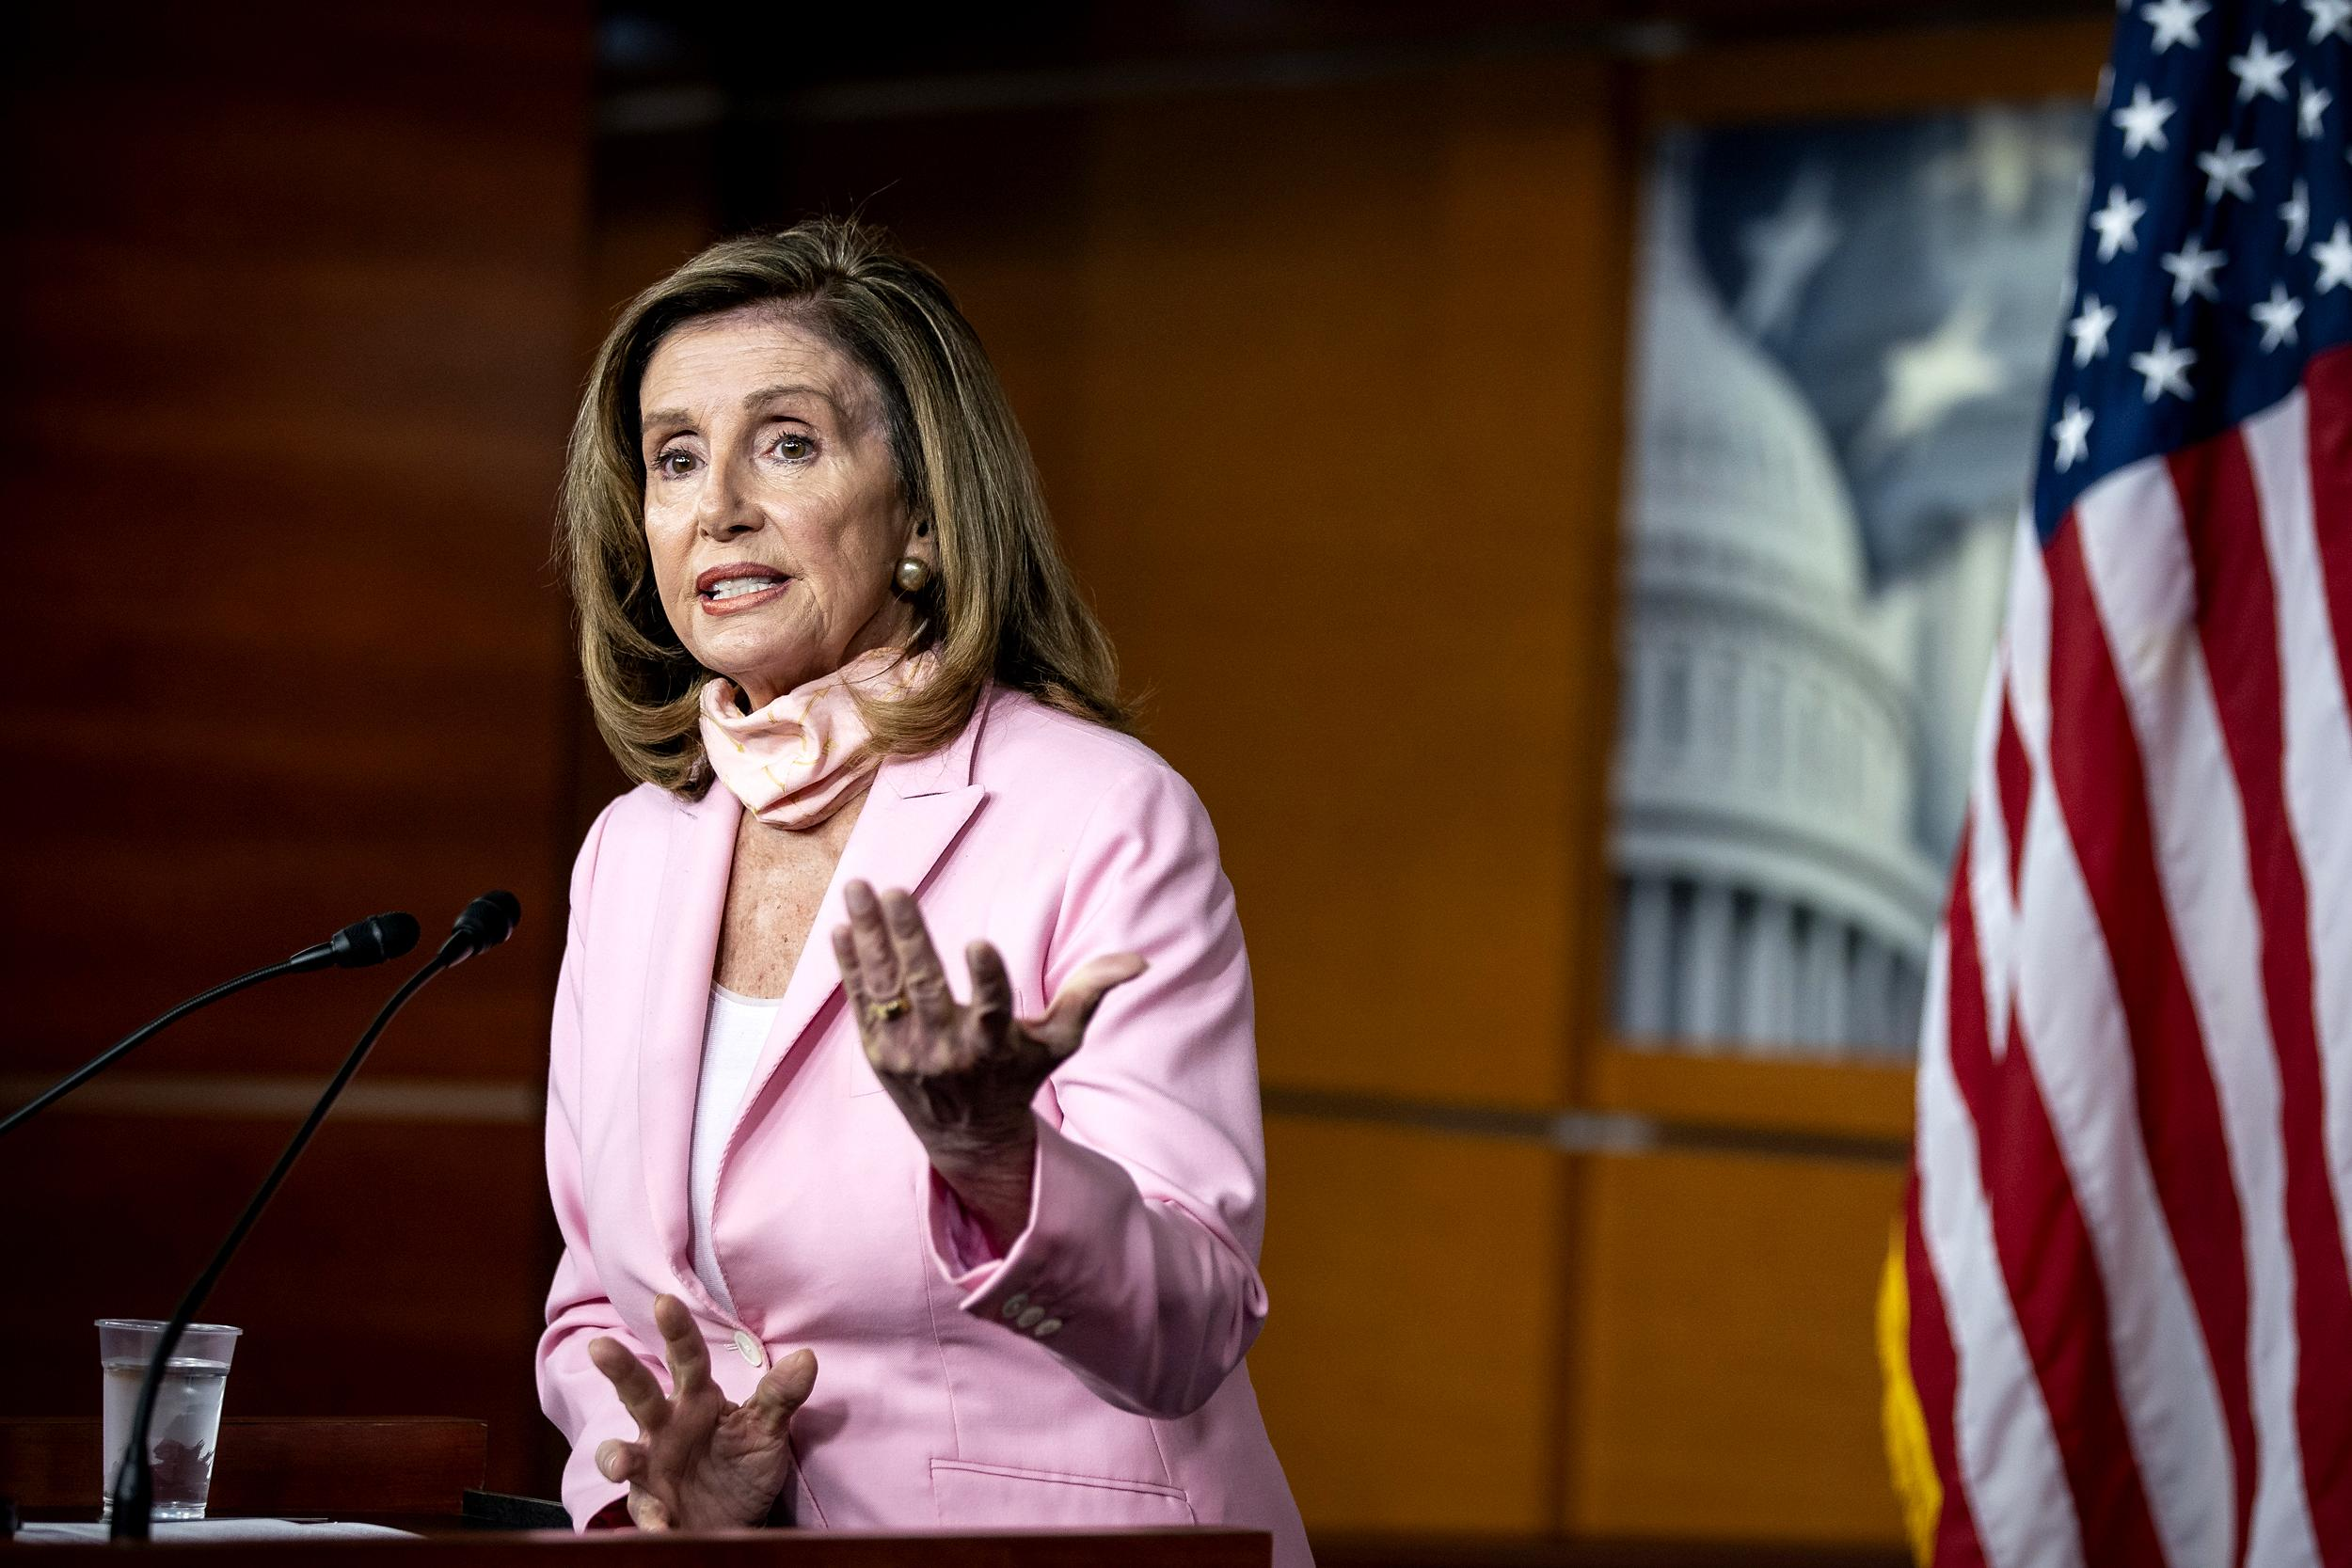 Speaker Pelosi under fire for receiving hair services amid salon closures